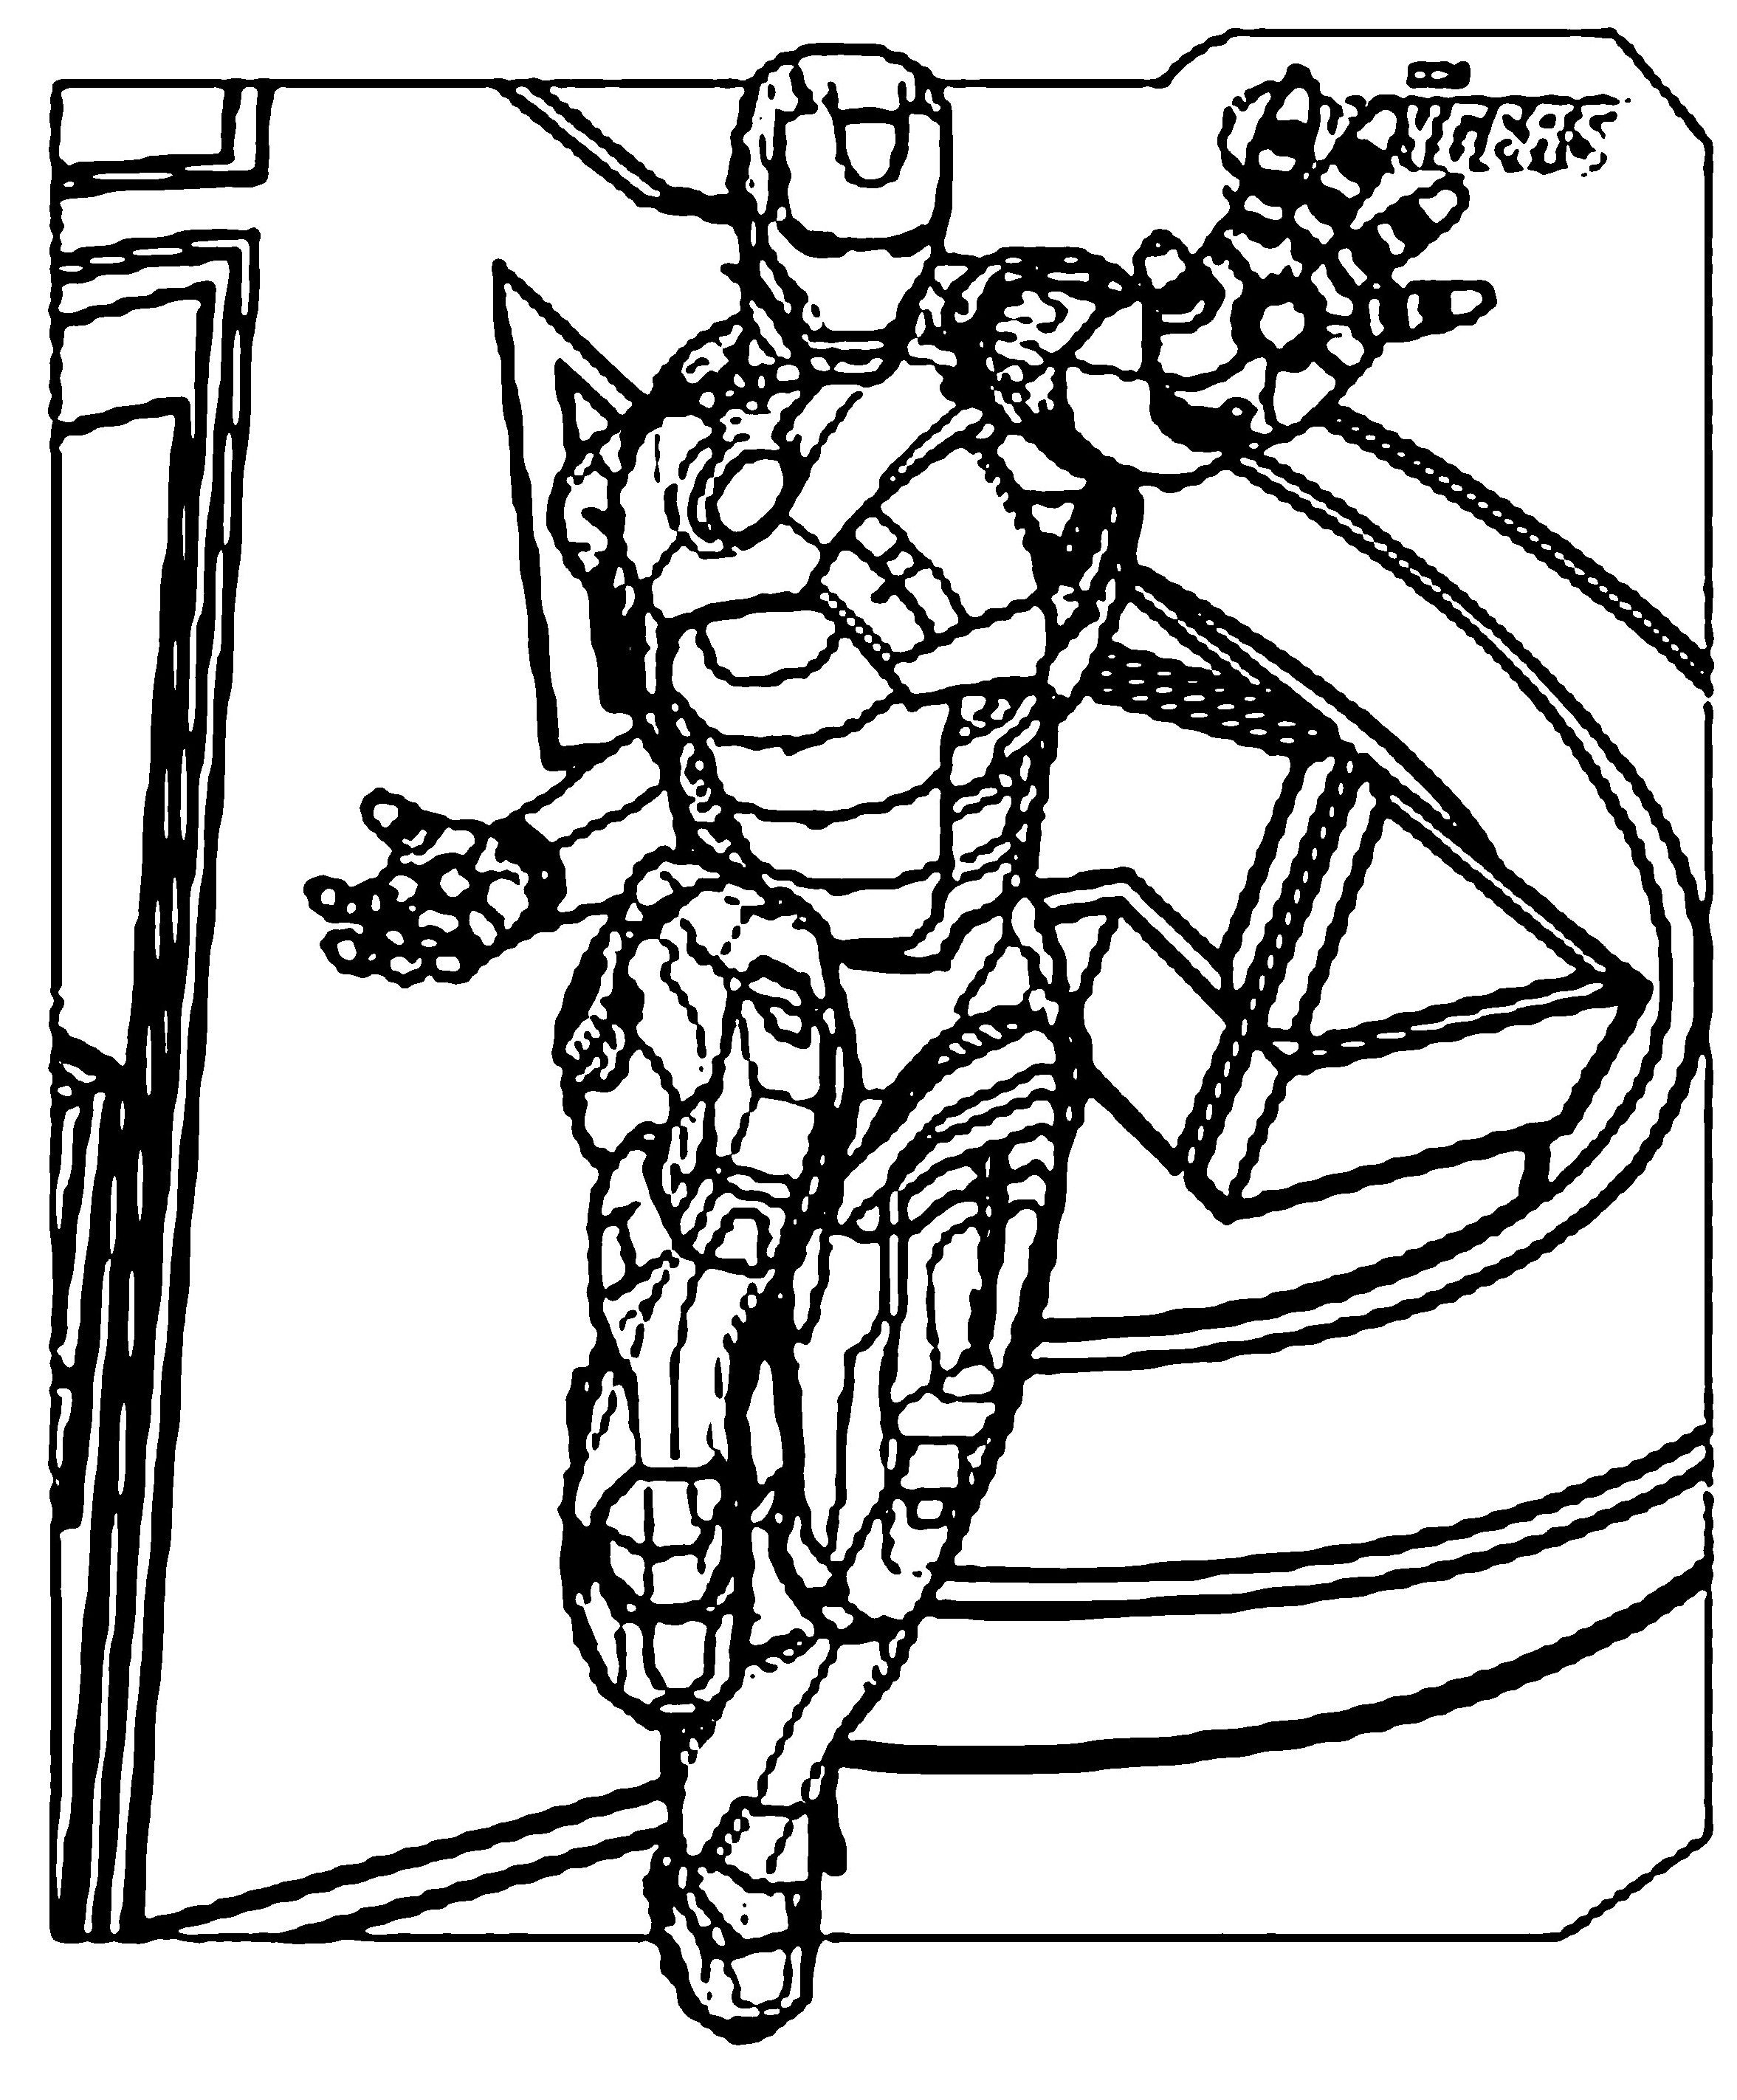 iron man coloring page | Iron Man Coloring Pages Avengers | ABC for ...